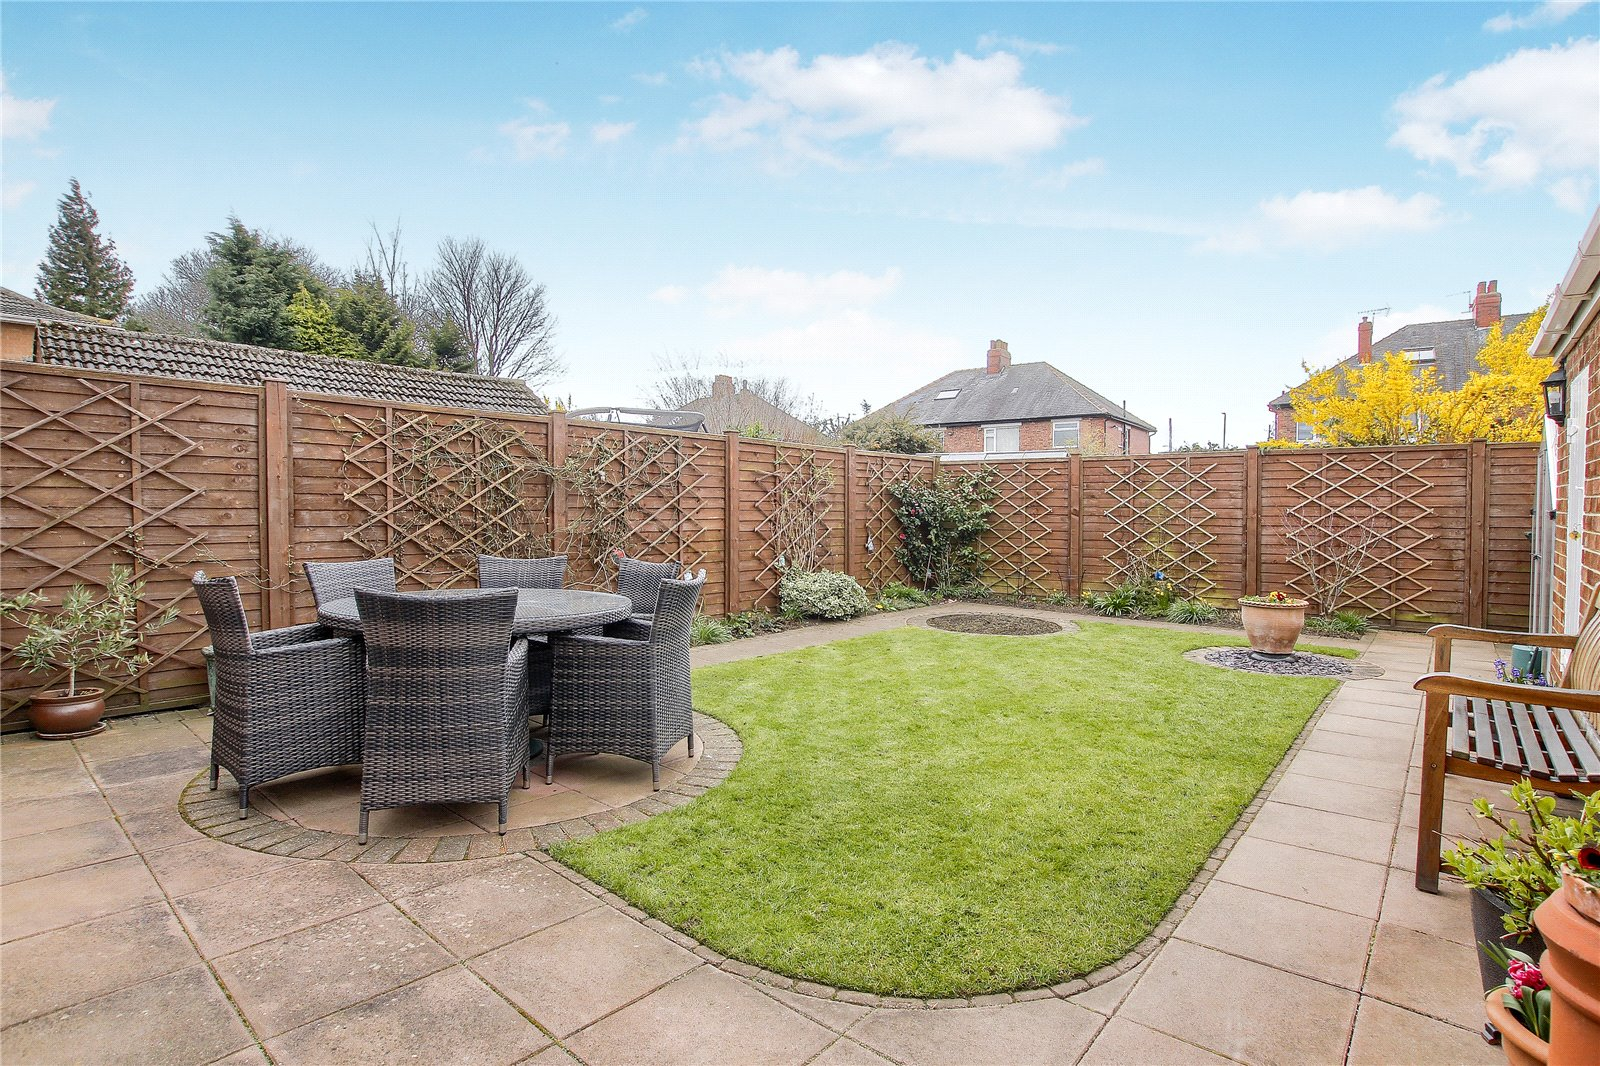 4 bed house for sale in Oldford Crescent, Acklam  - Property Image 27